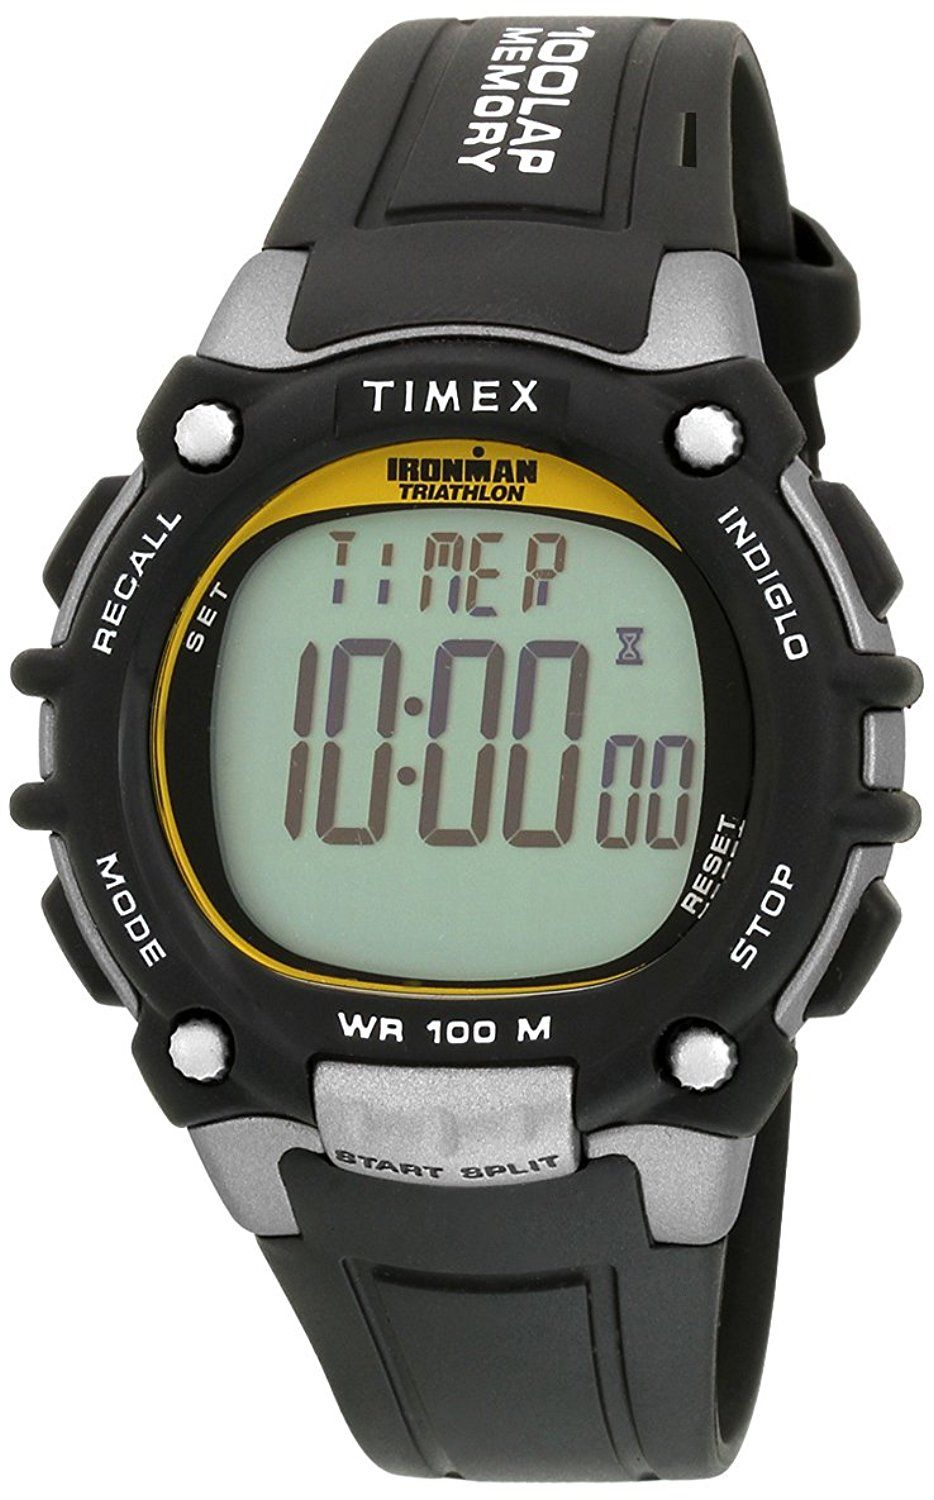 2b446e37e68e Buy Timex Ironman 100 Lap Sports   Fitness Watch Unisex - NA33 Online at  Low Prices in India - Amazon.in timex watches